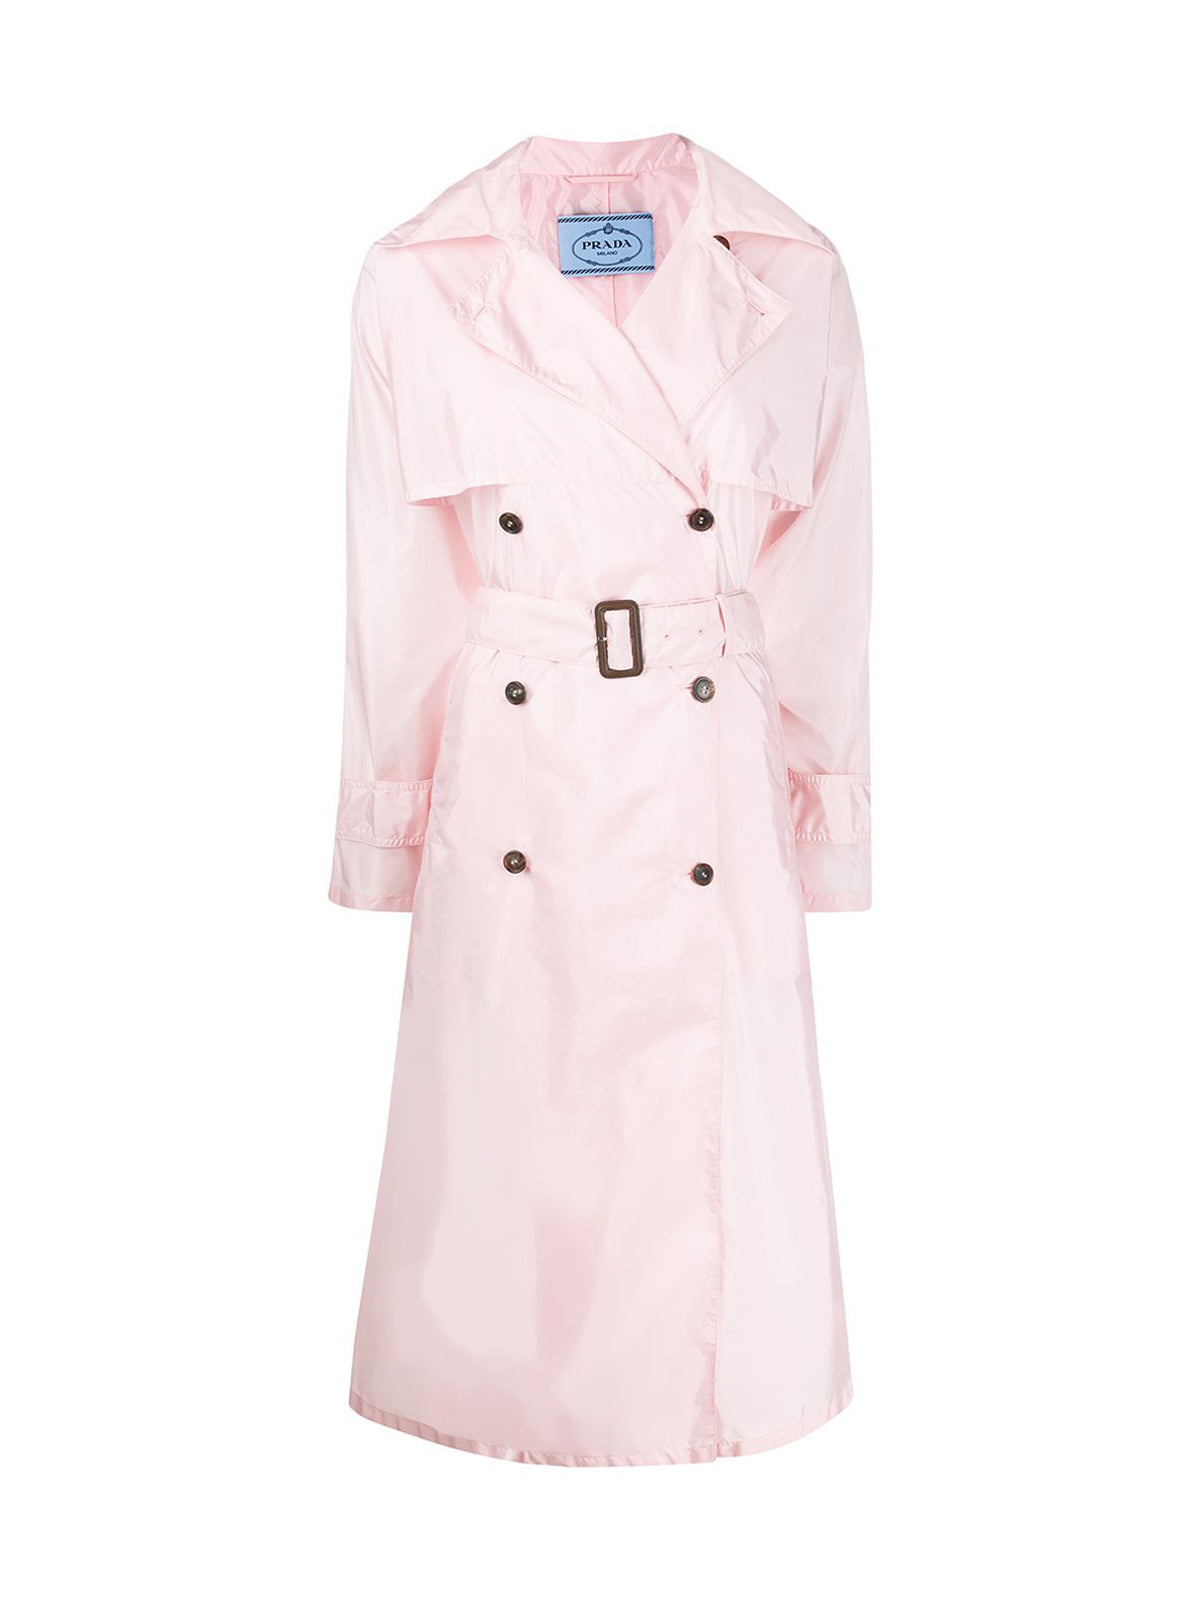 PRADA NYLON TRENCH